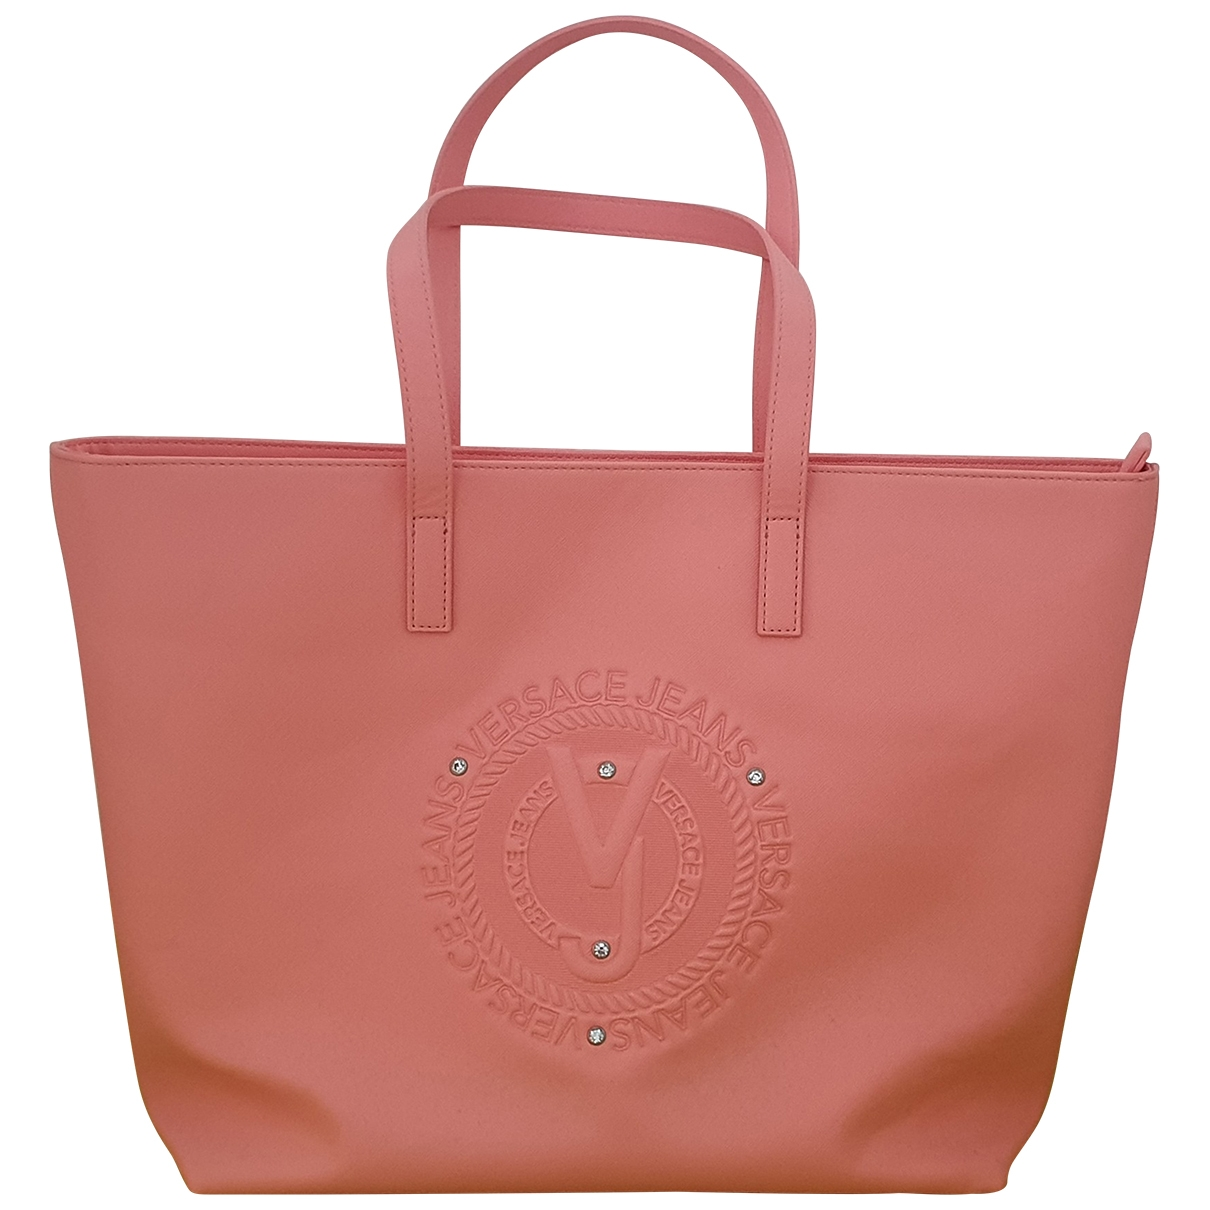 Versace Jeans \N Pink handbag for Women \N